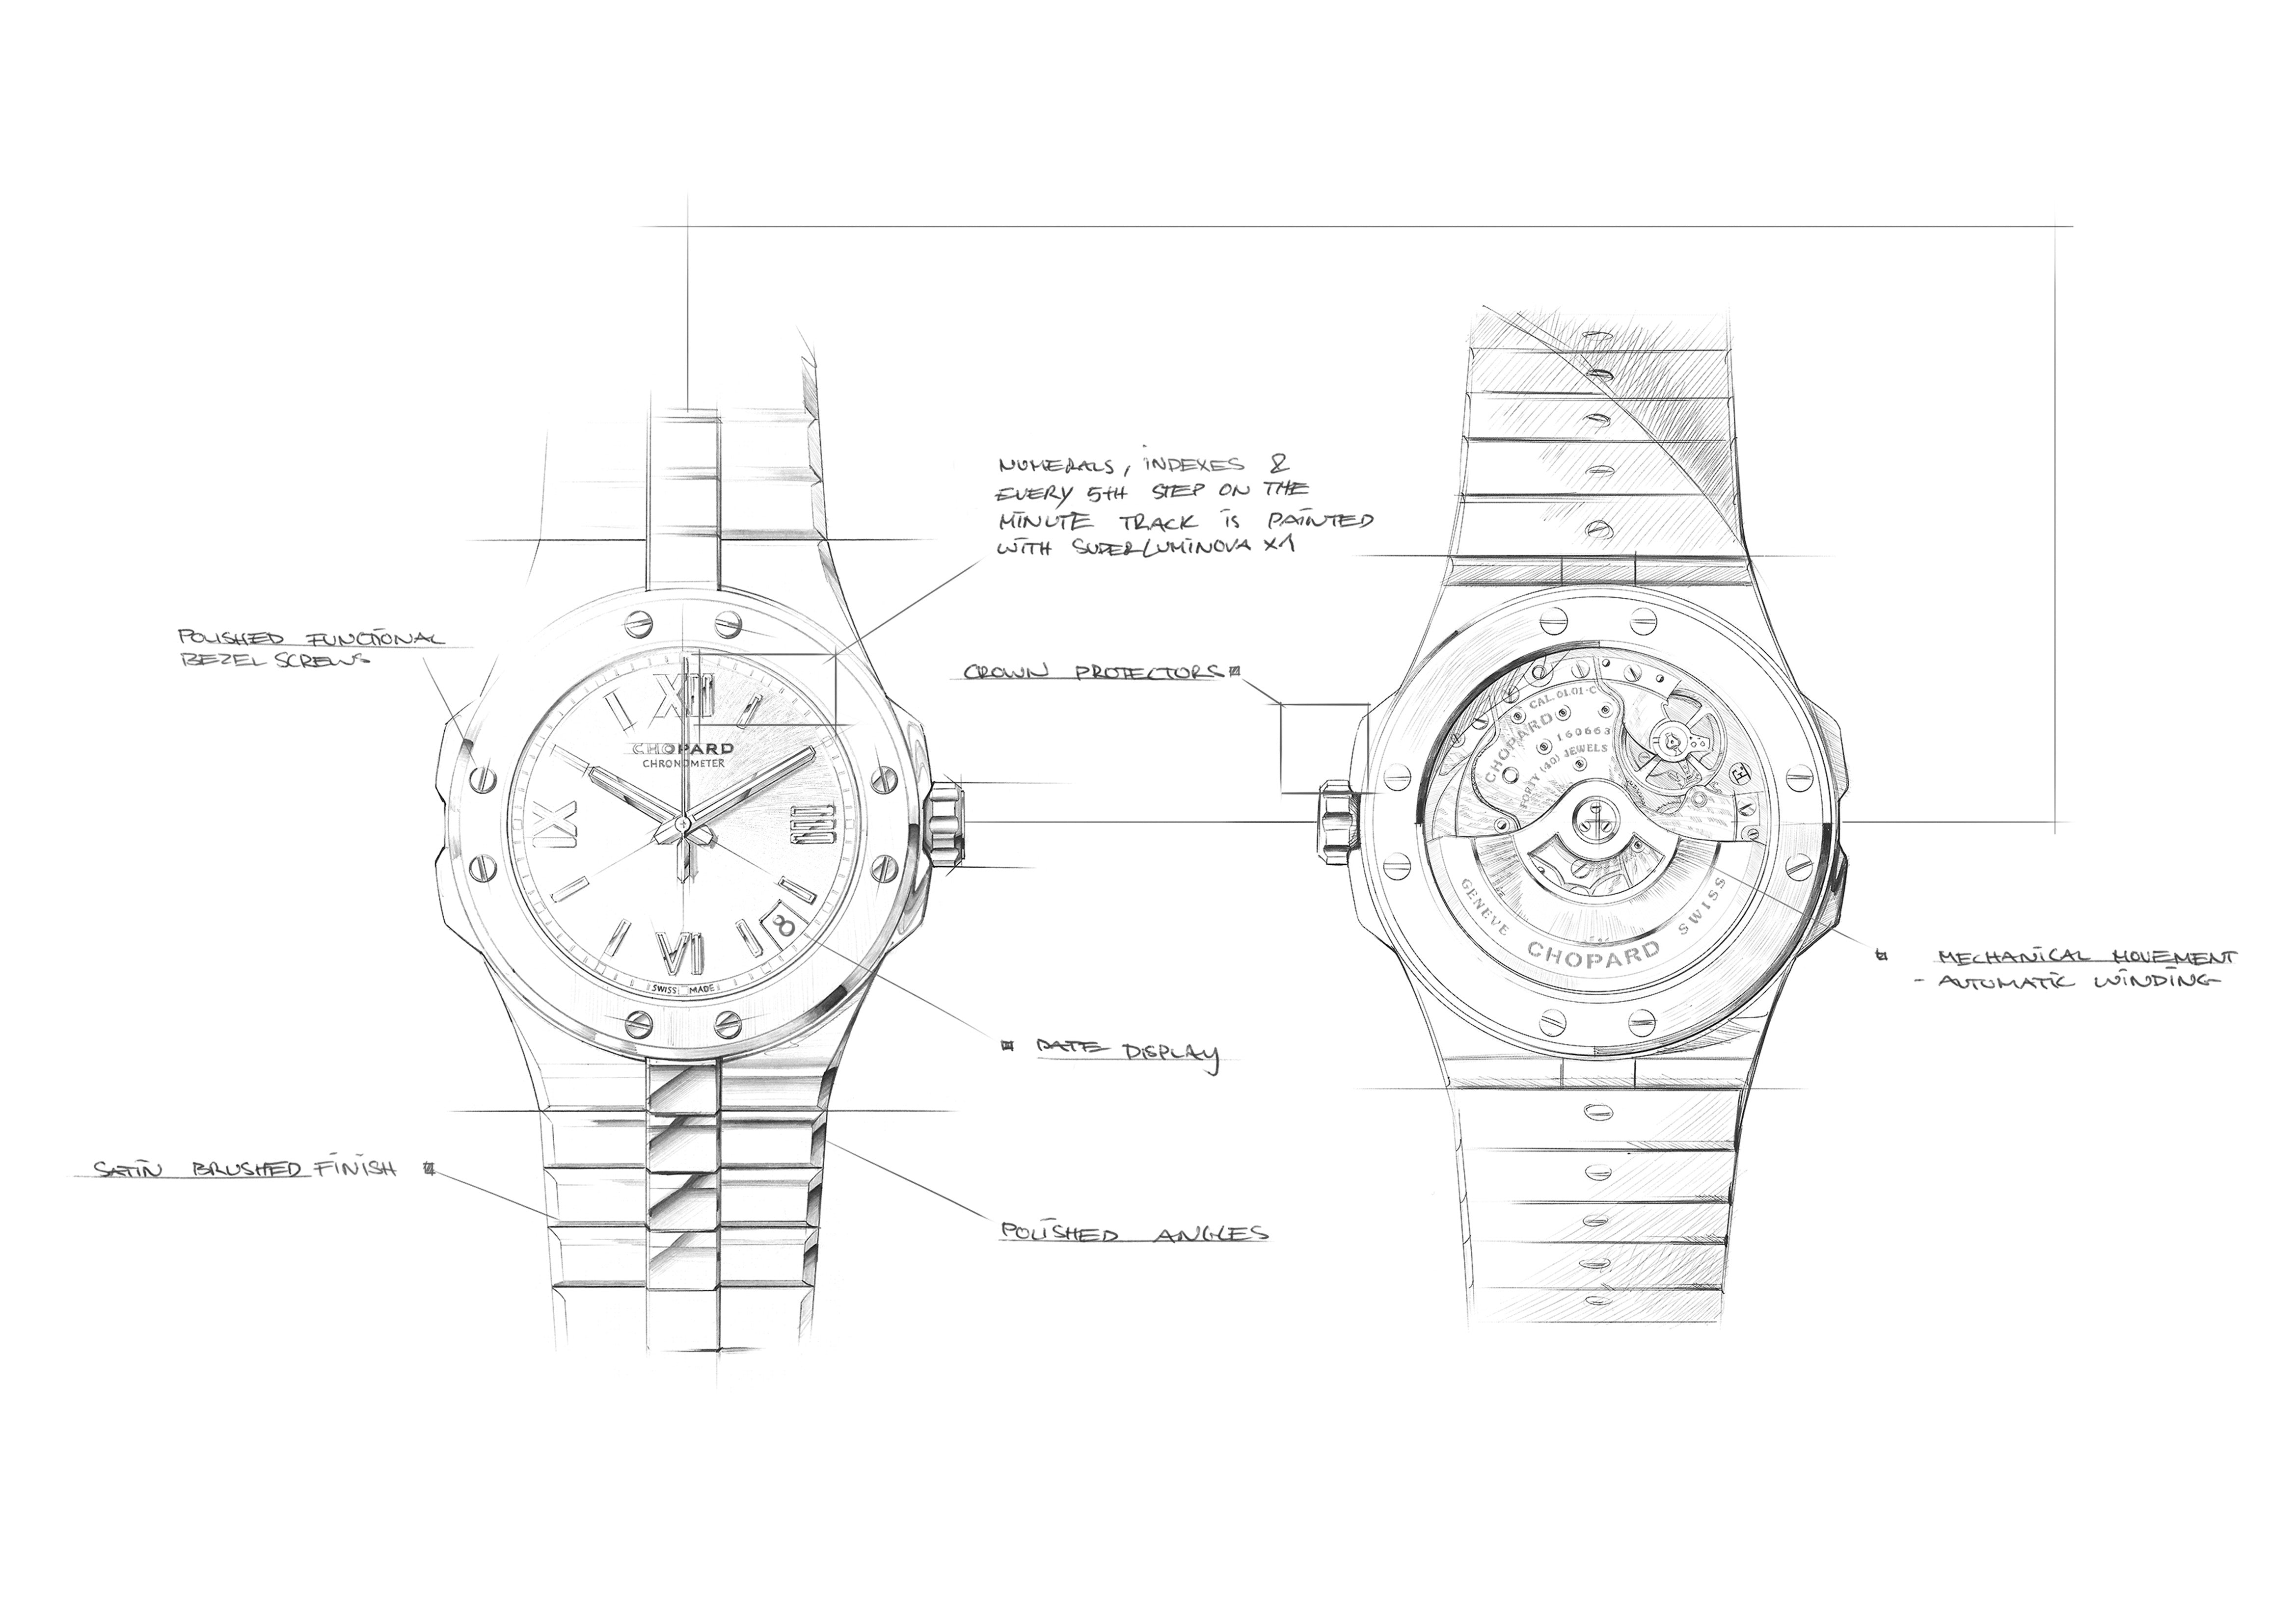 Chopard Alpine Eagle design sketch showing integrated bracelet design and contraction for A Collected Man London